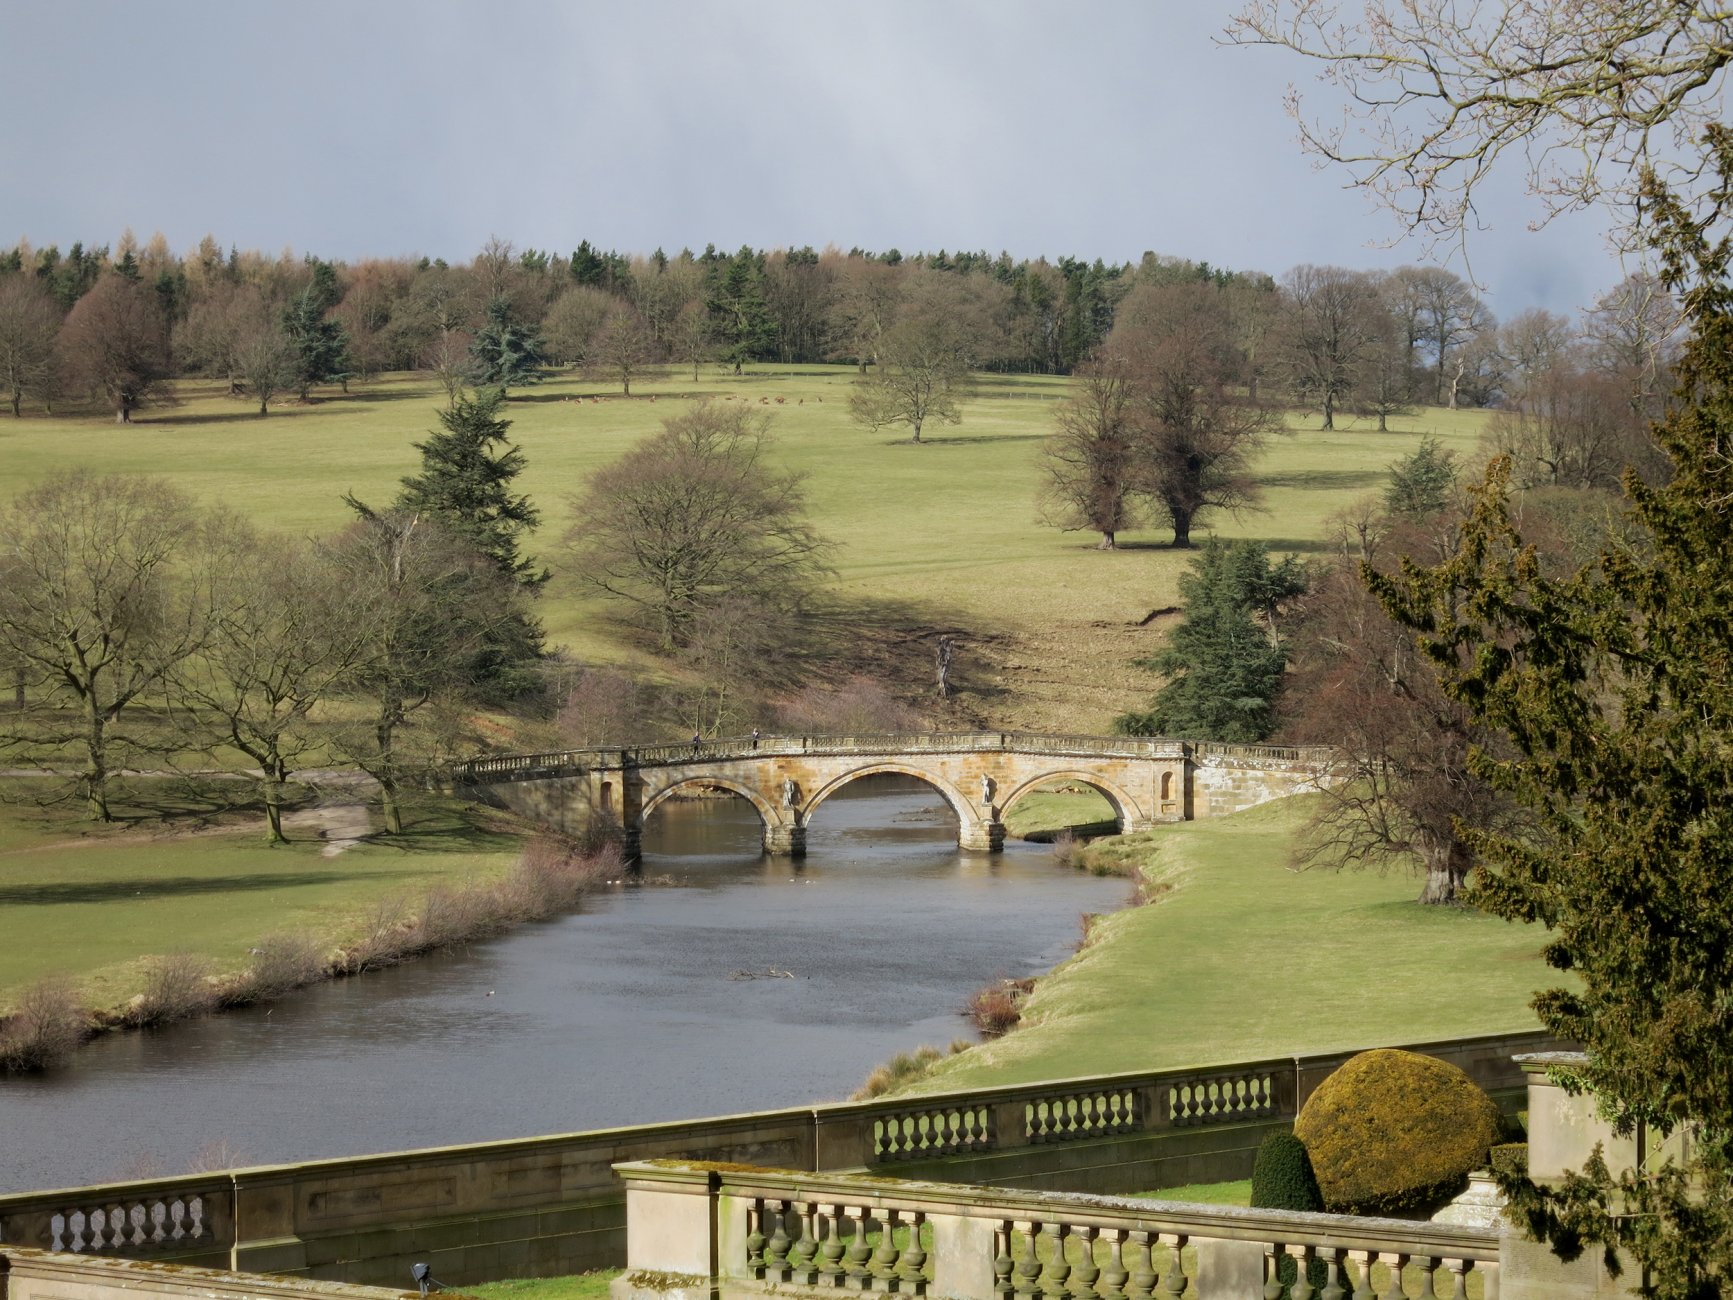 paines-bridge-over-the-river-derwent-from-the-garden-c-matthew-bullen.jpg